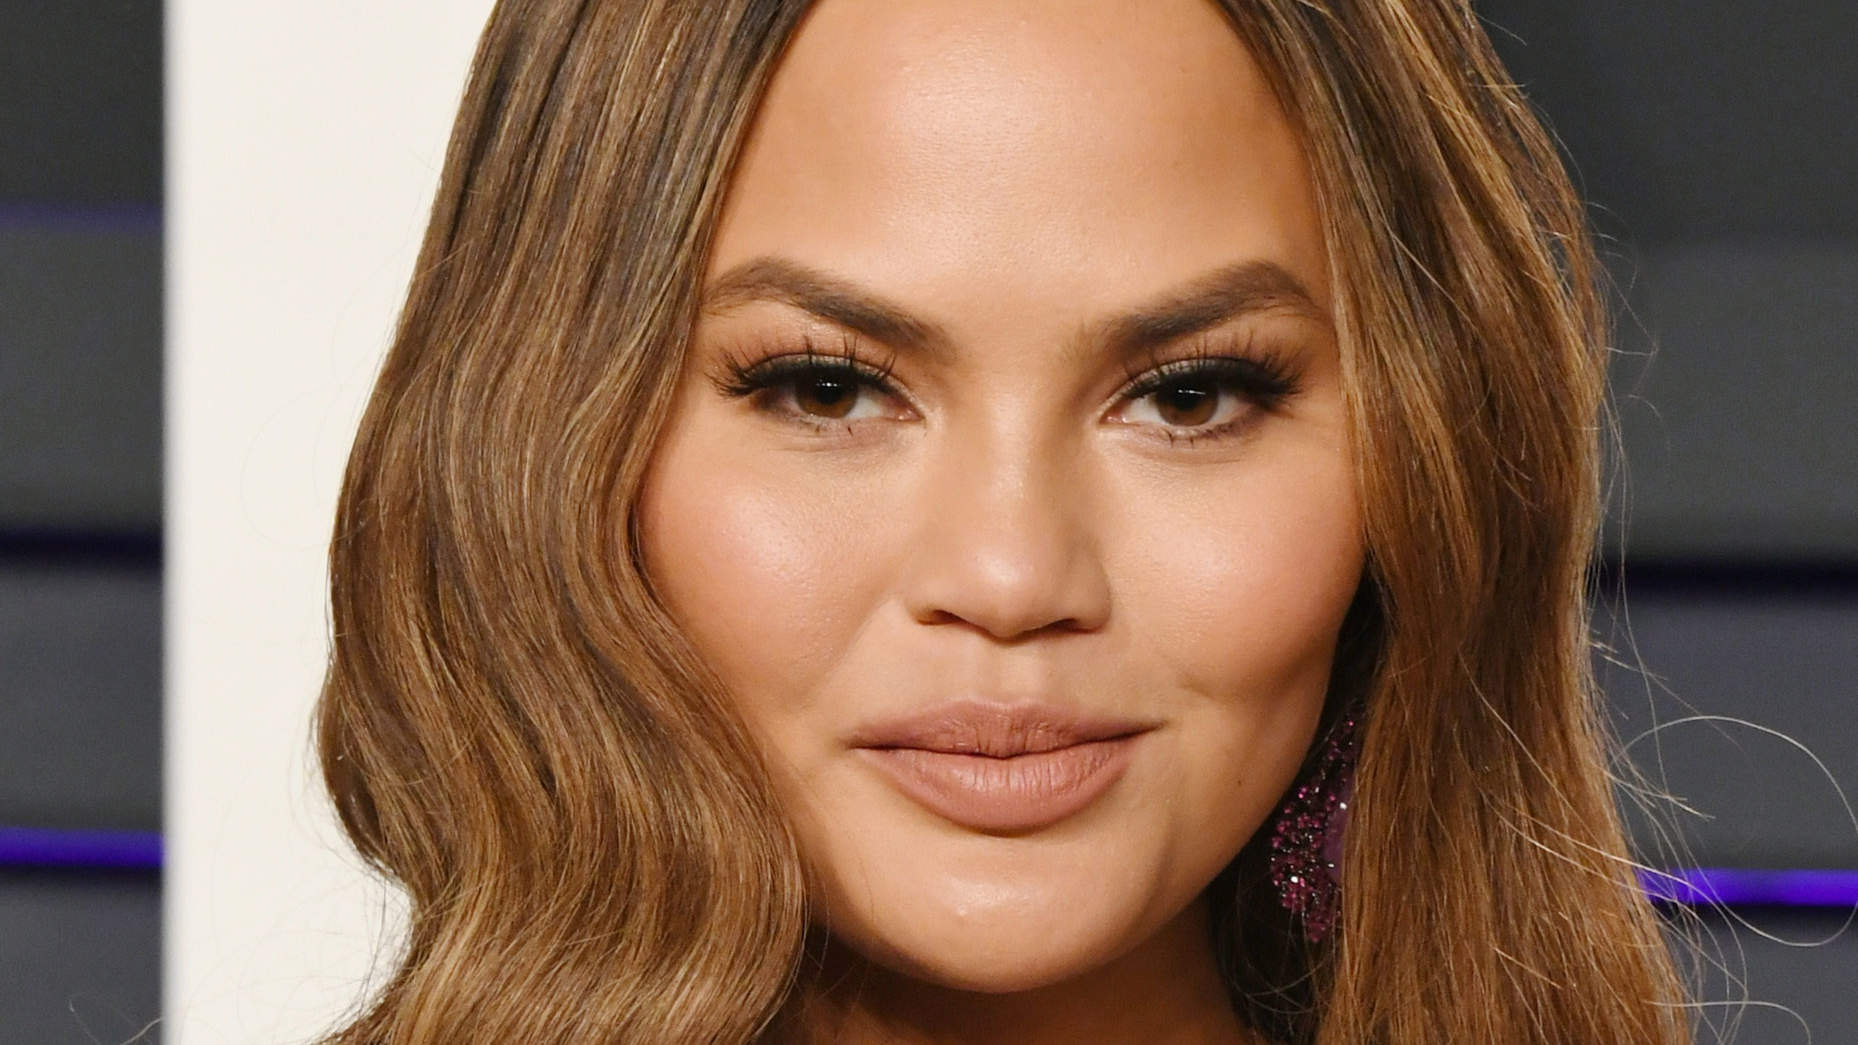 Chrissy Teigen's Bob Looks Nothing Like the Other Celebrity Bobs Out There